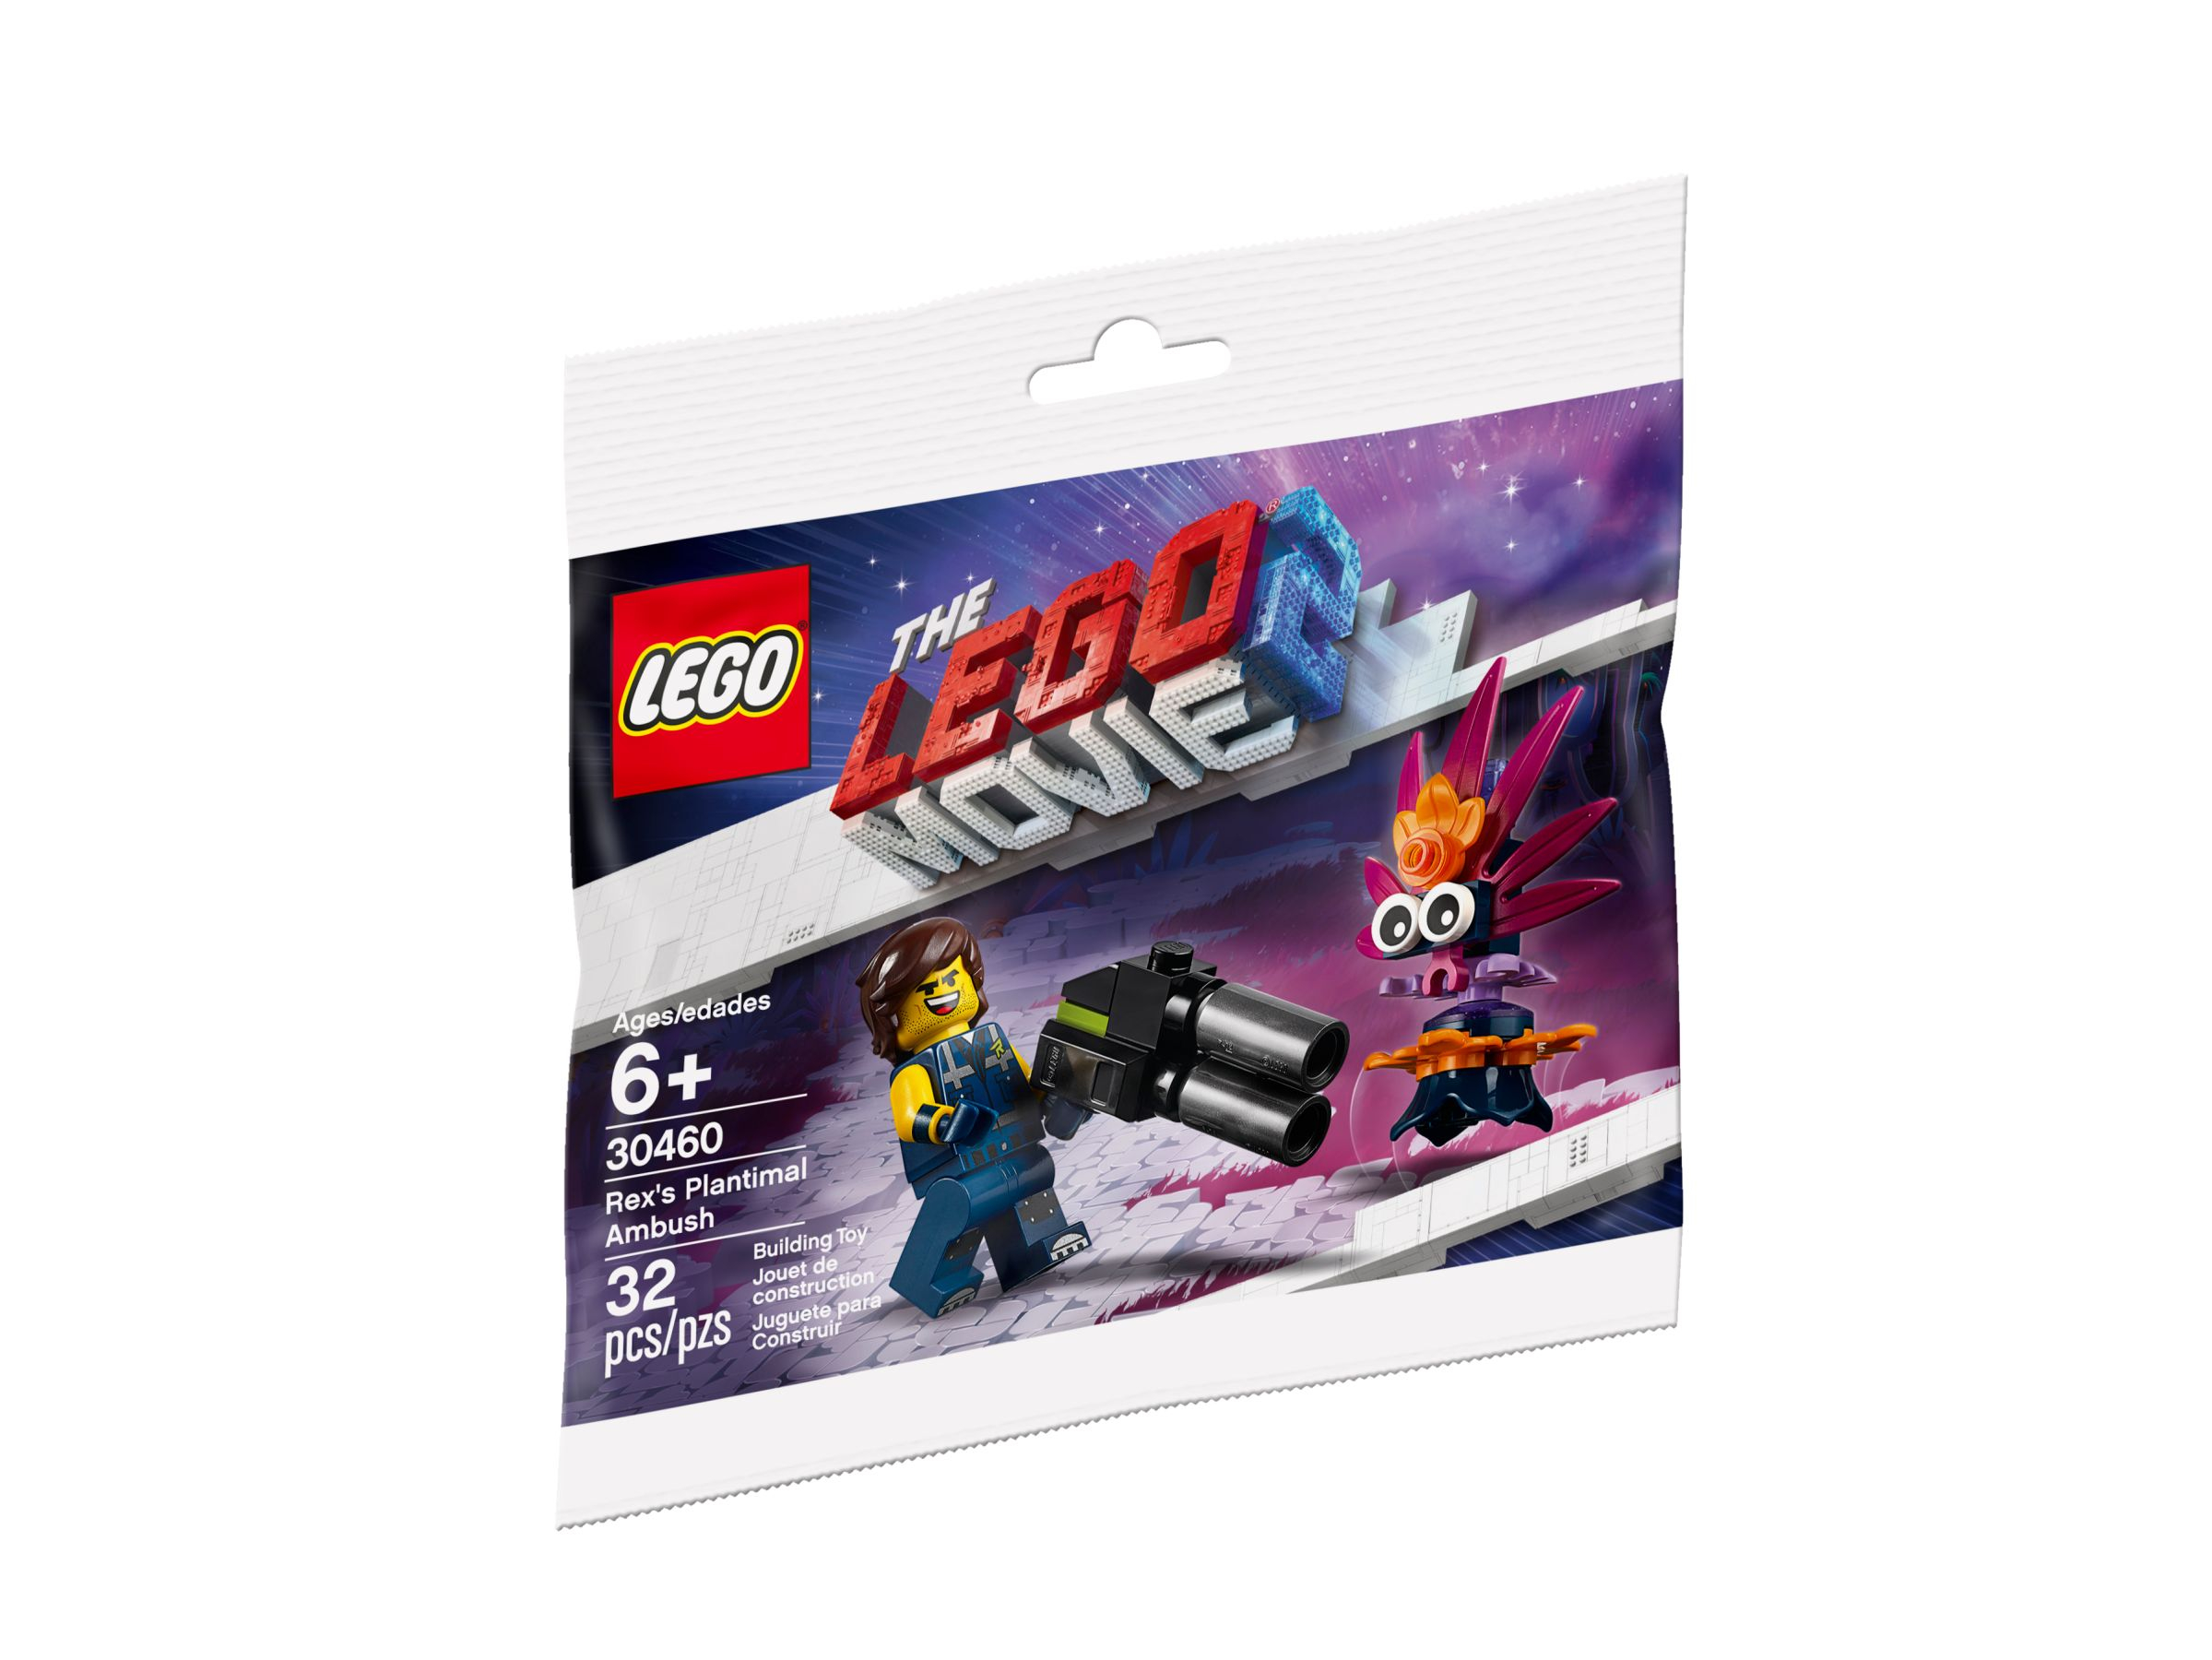 LEGO The LEGO Movie 2 30460 Rex' Hinterhalt LEGO_30460_alt1.jpg